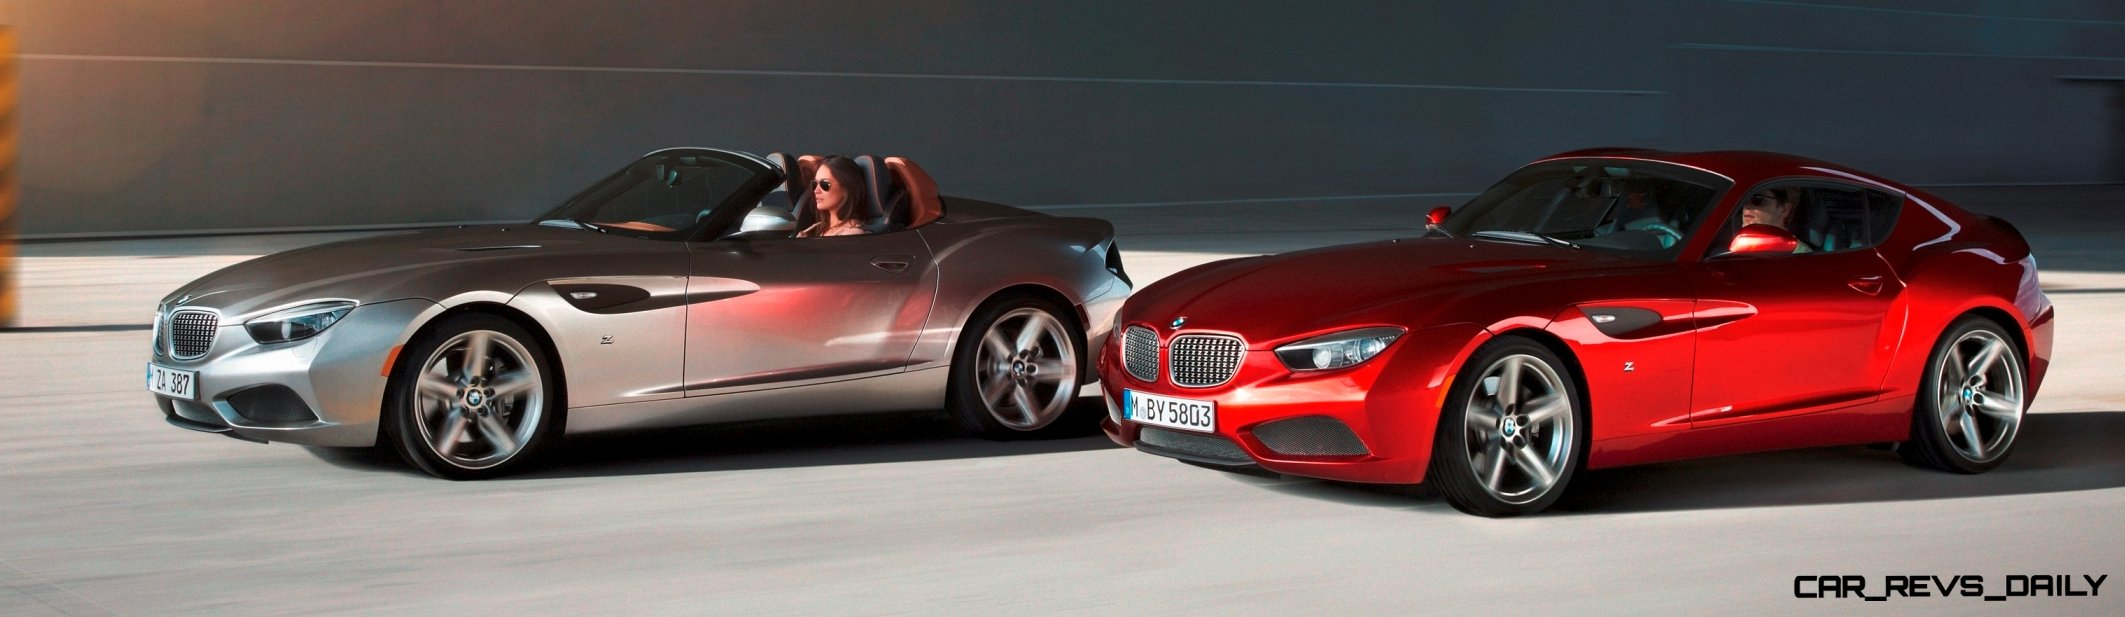 Concept flashback 2012 bmw zagato z4 roadster and coupe 42